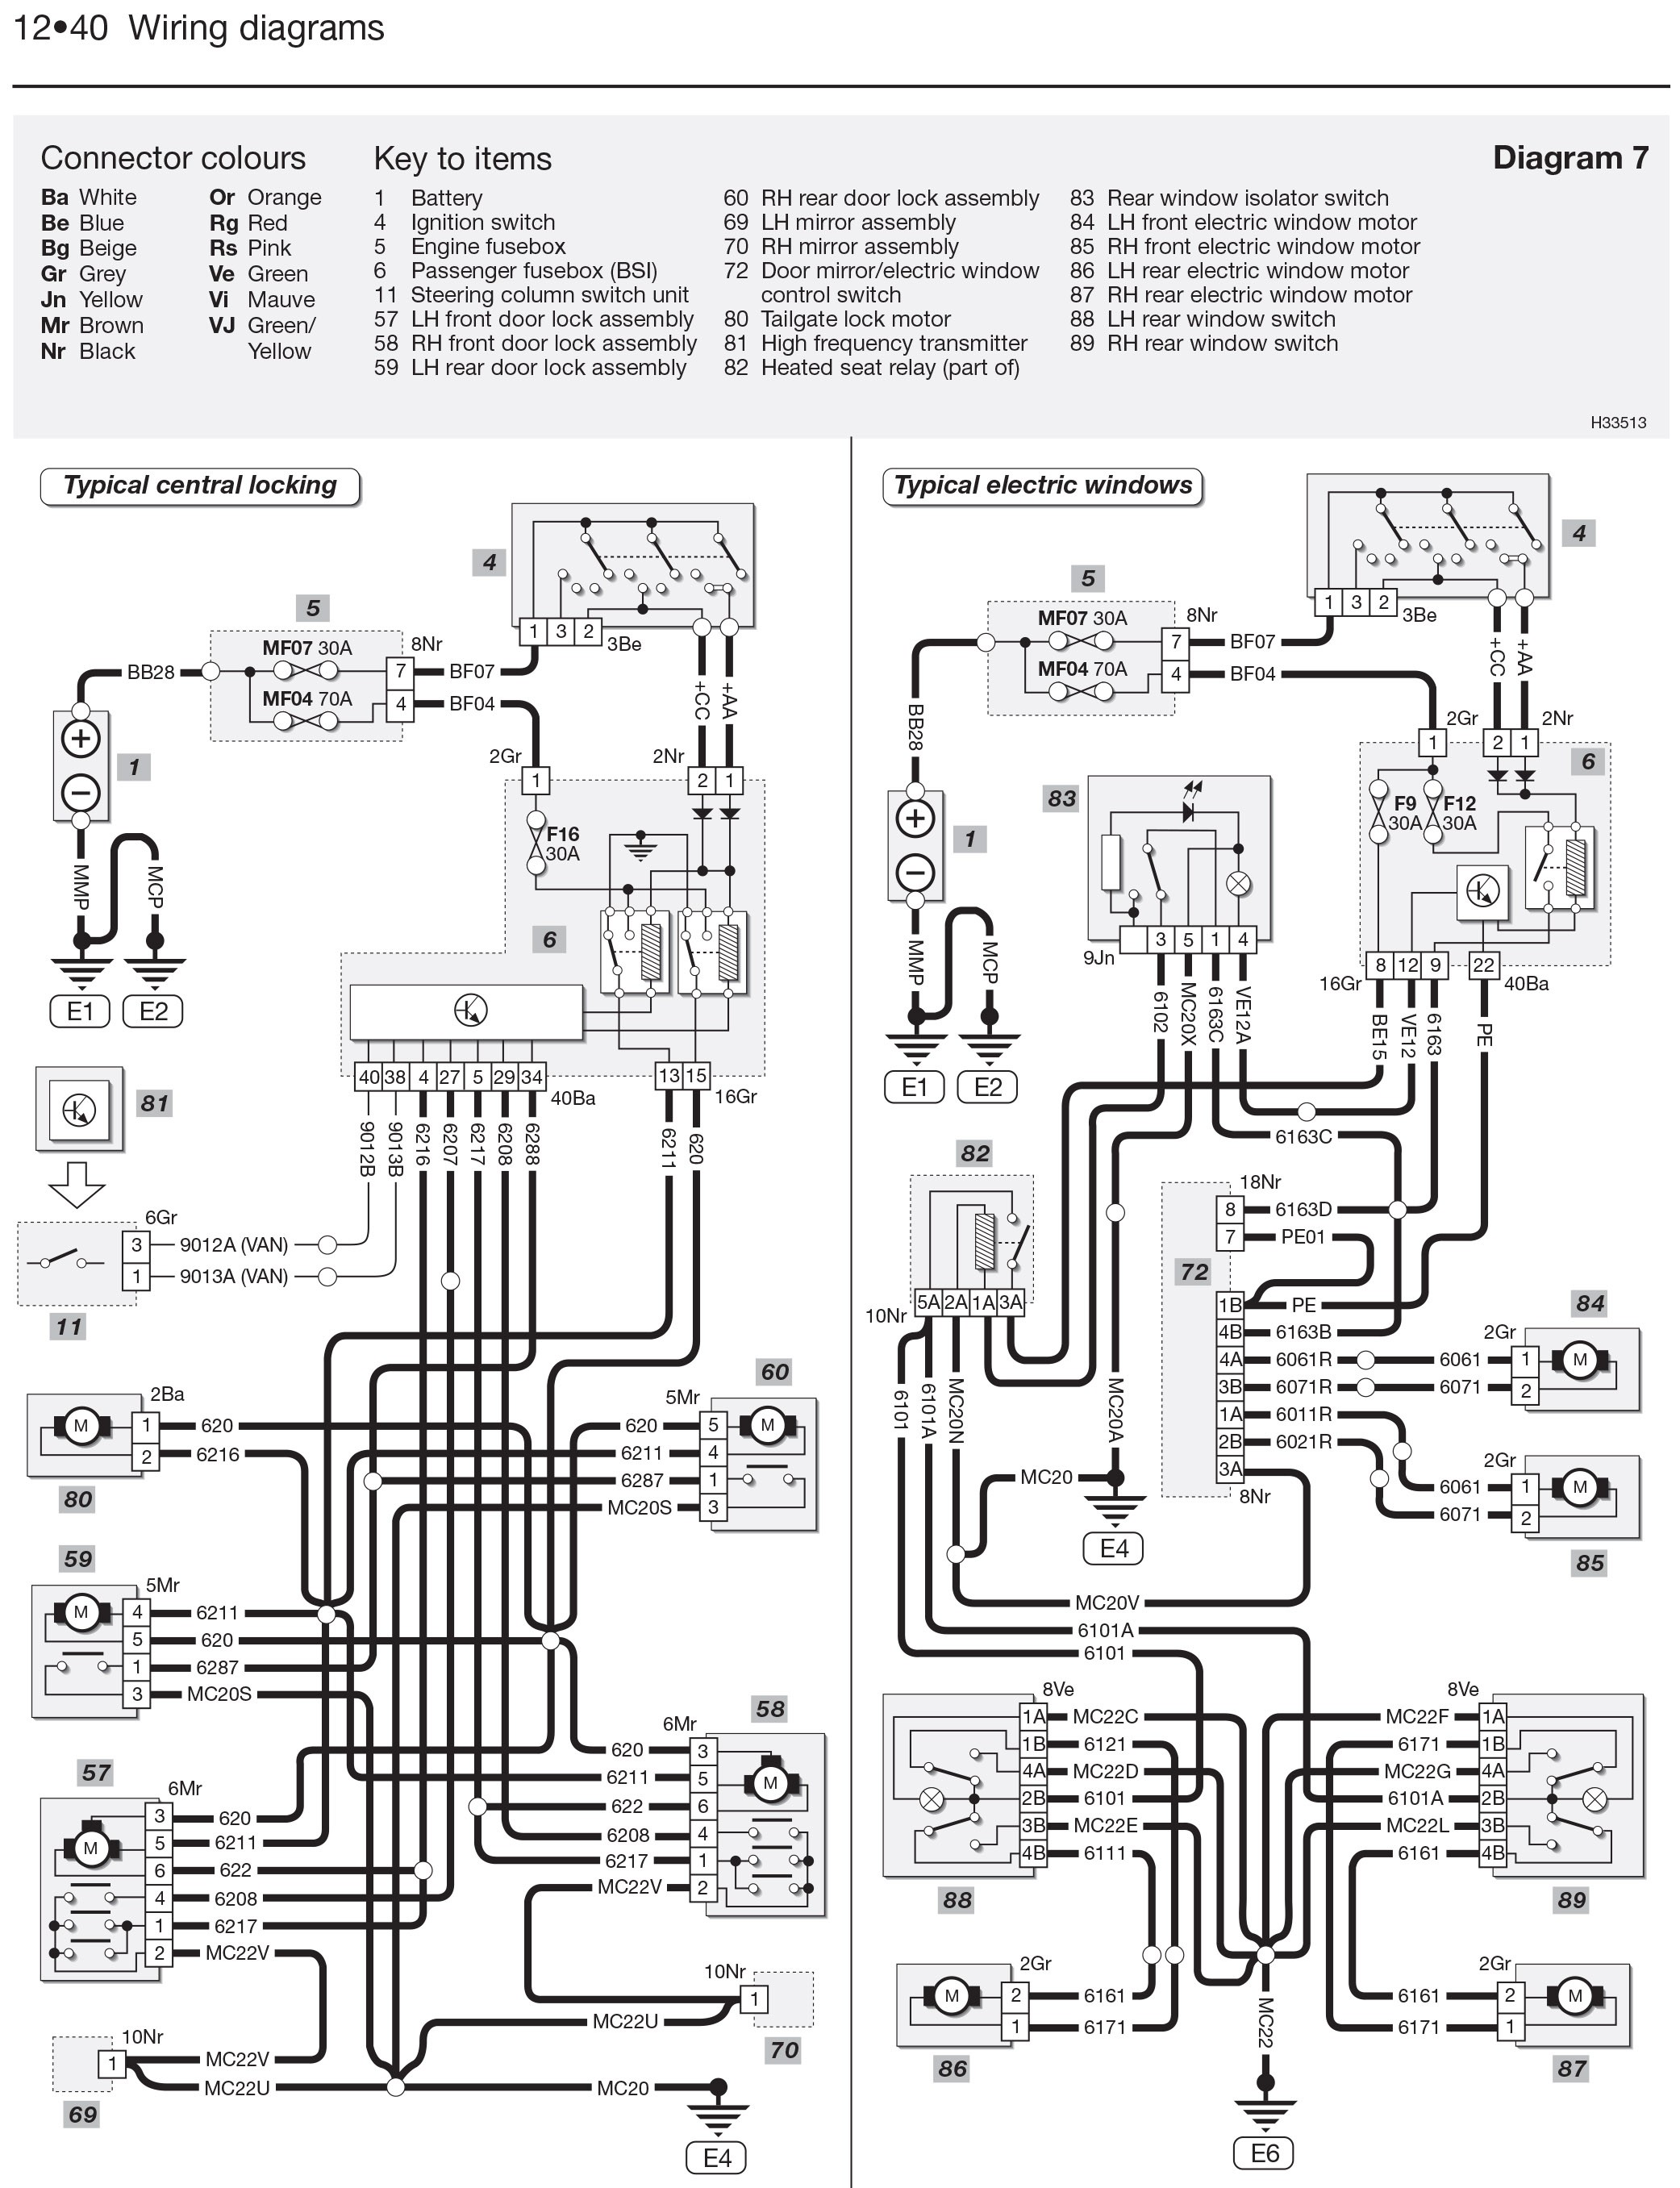 Amazing peugeot 206 wiring diagram embellishment best images for peugeot 206 engine diagram peugeot 206 petrol diesel 02 09 haynes cheapraybanclubmaster Images